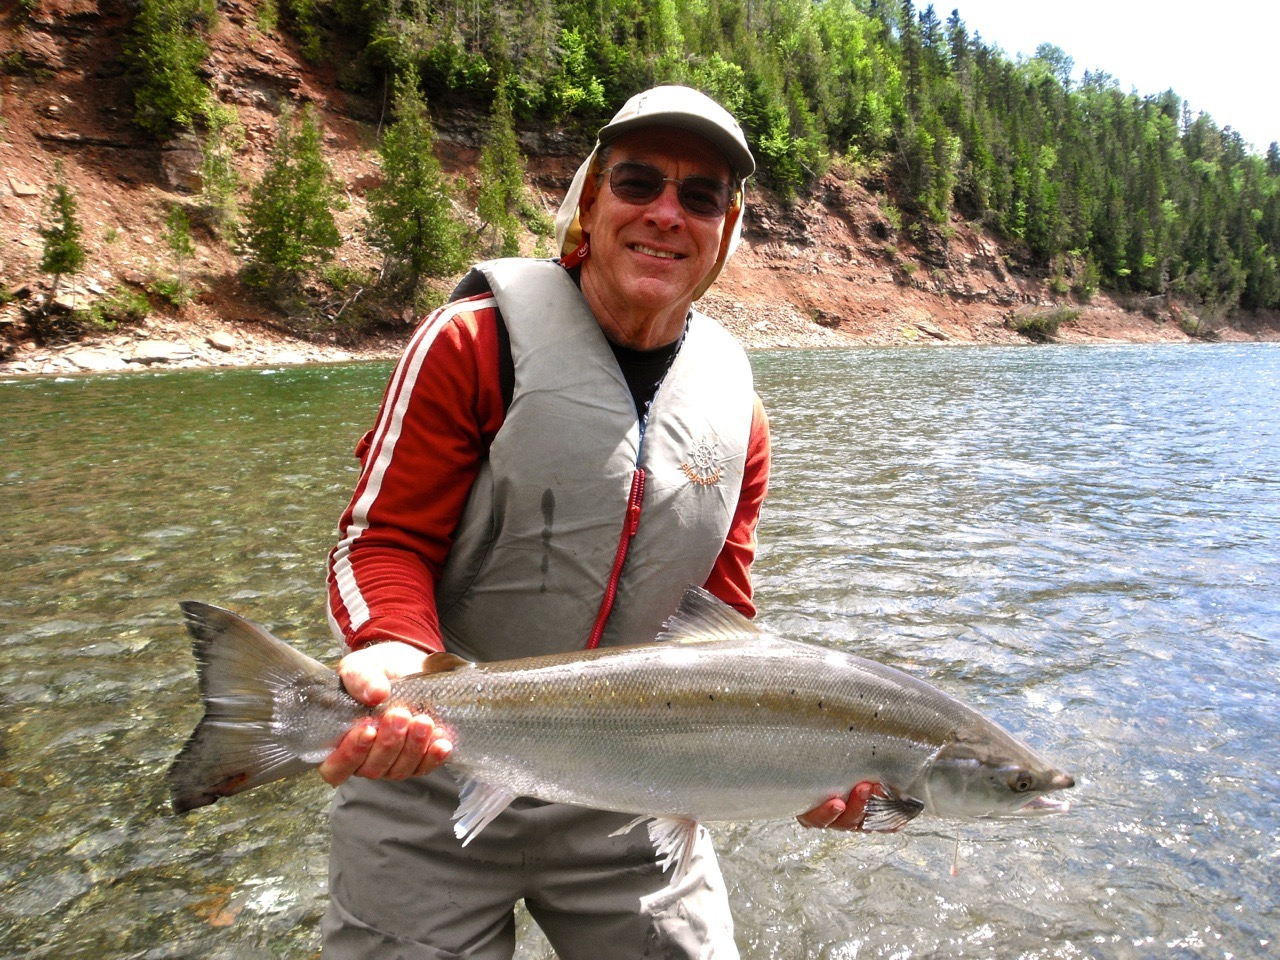 Texan, Allen Barron with his first Atlantic salmon, way to go Allen.